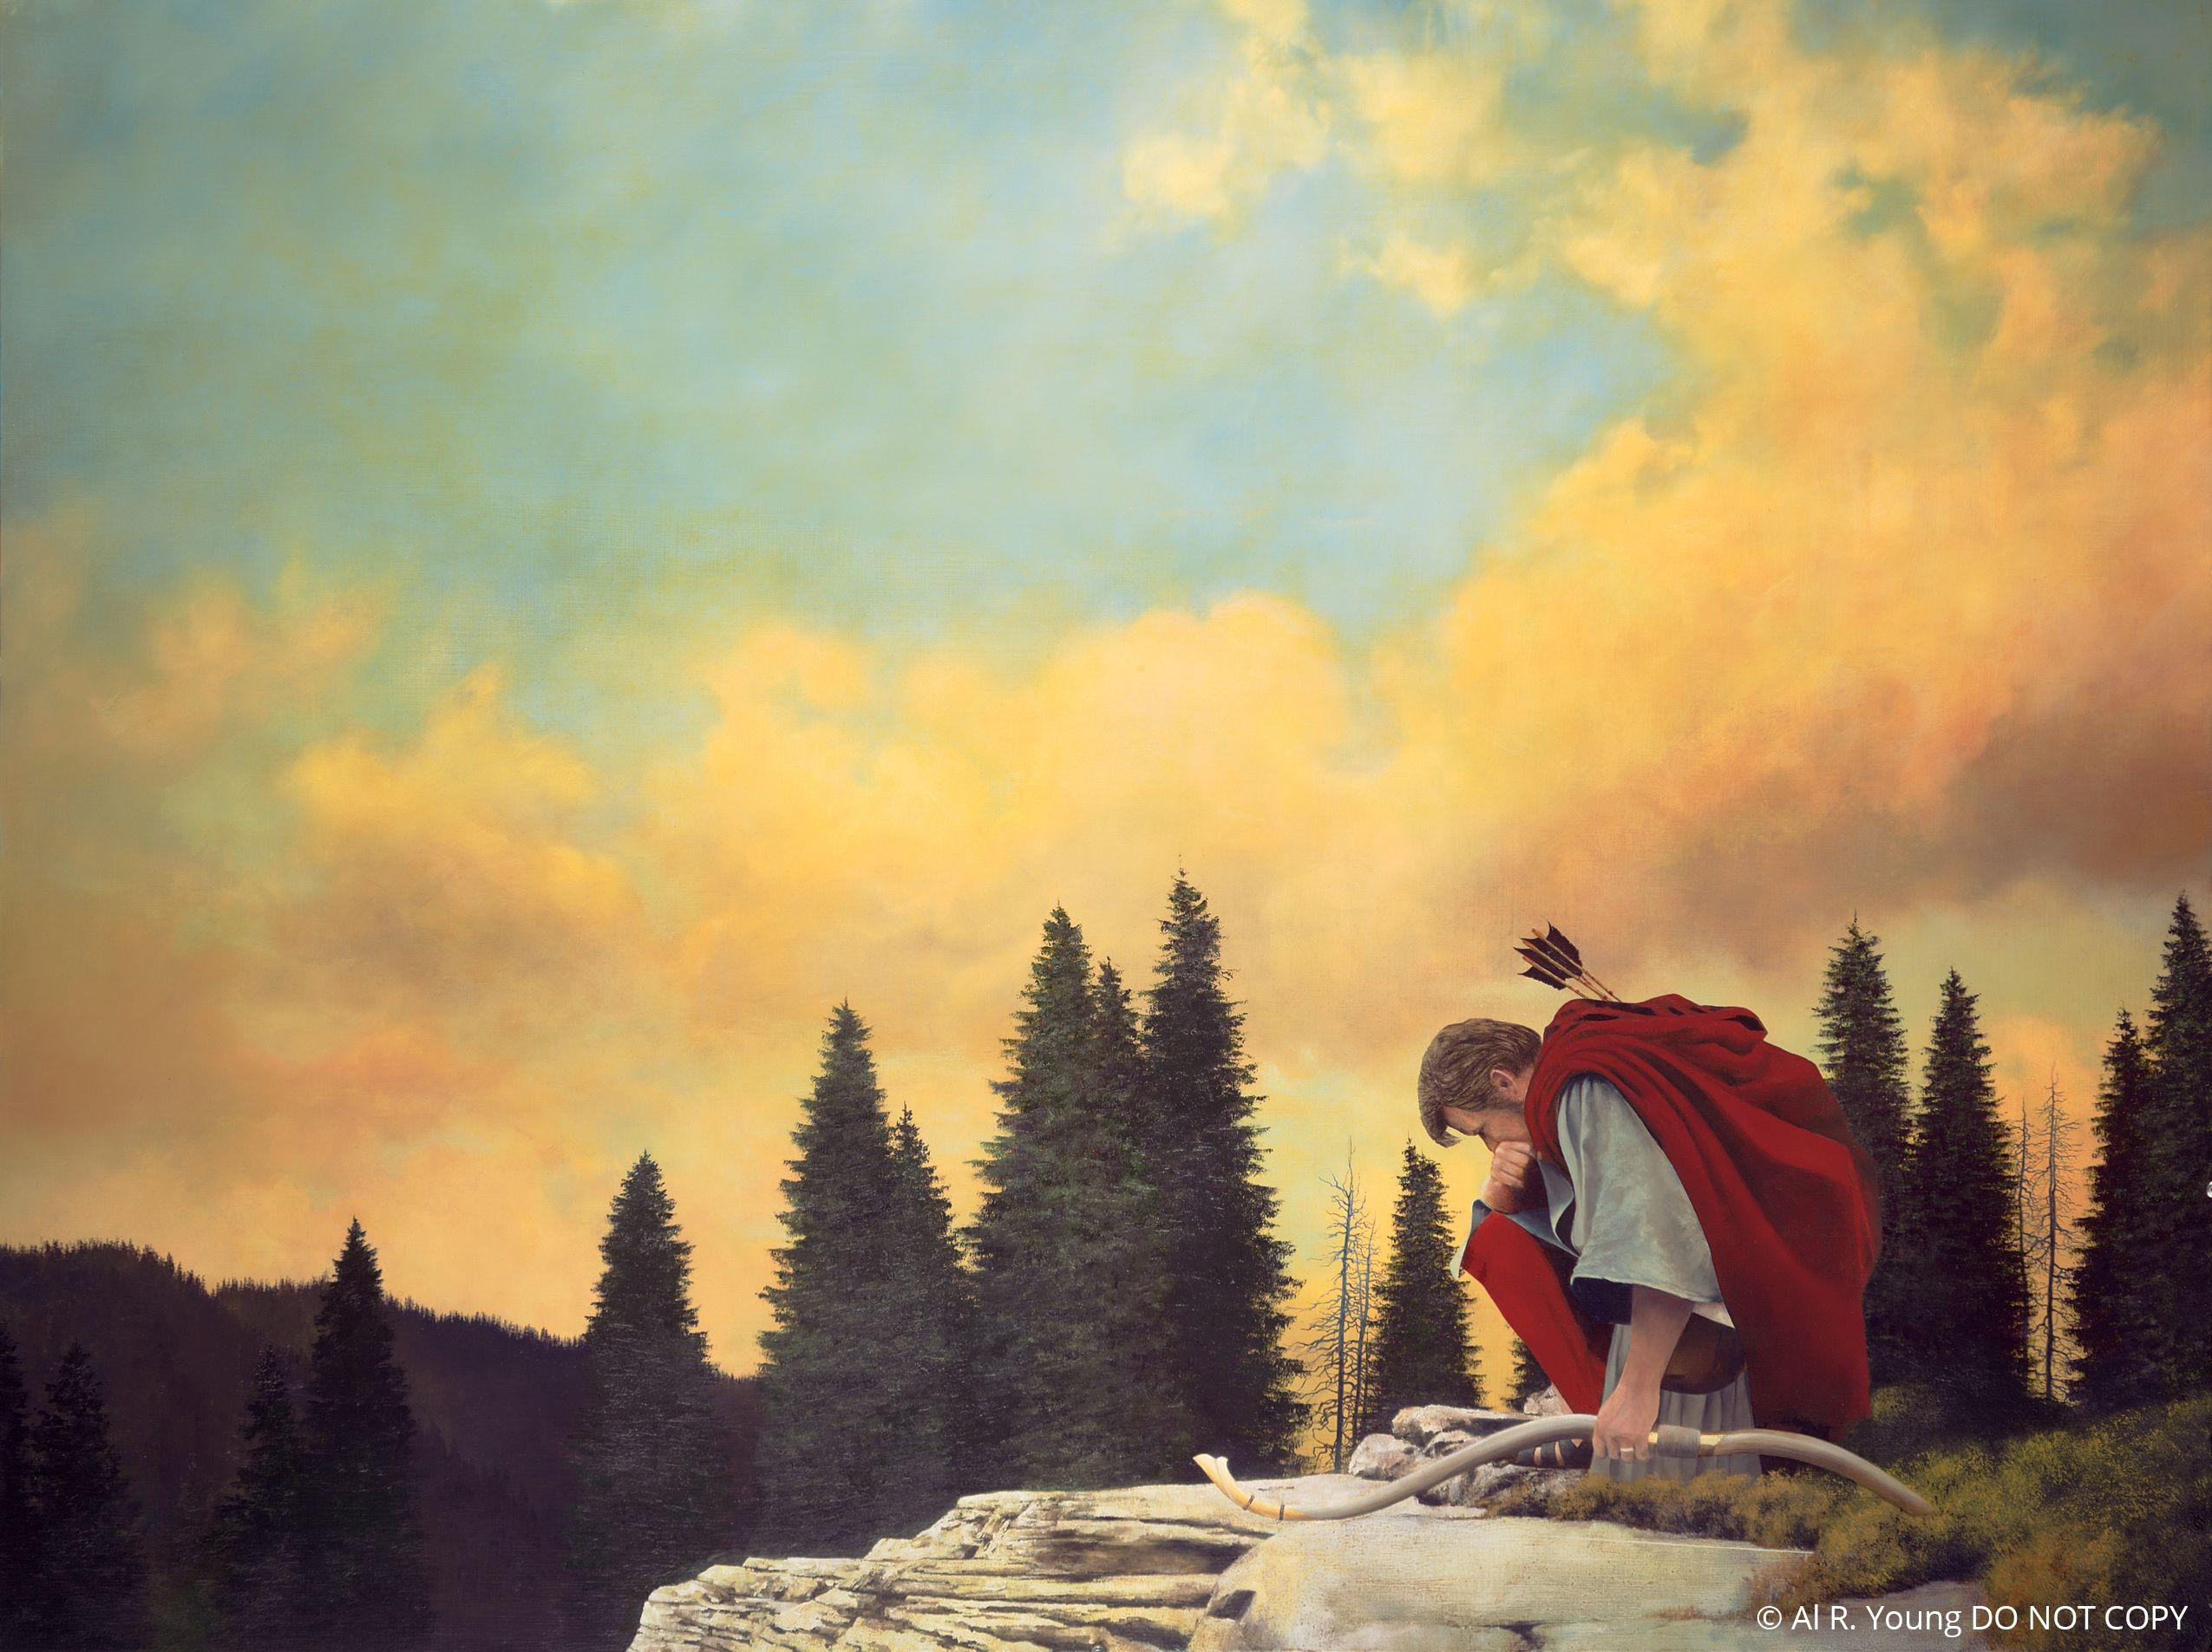 And My Soul Hungered (Enos Praying), by Al R. Young; GAB 72; Enos 1; © Al R. Young: DO NOT COPY This asset is not available for download. It is for Church use and online viewing only. See the Media Library usage page for more information. © undefined ipCode 1.